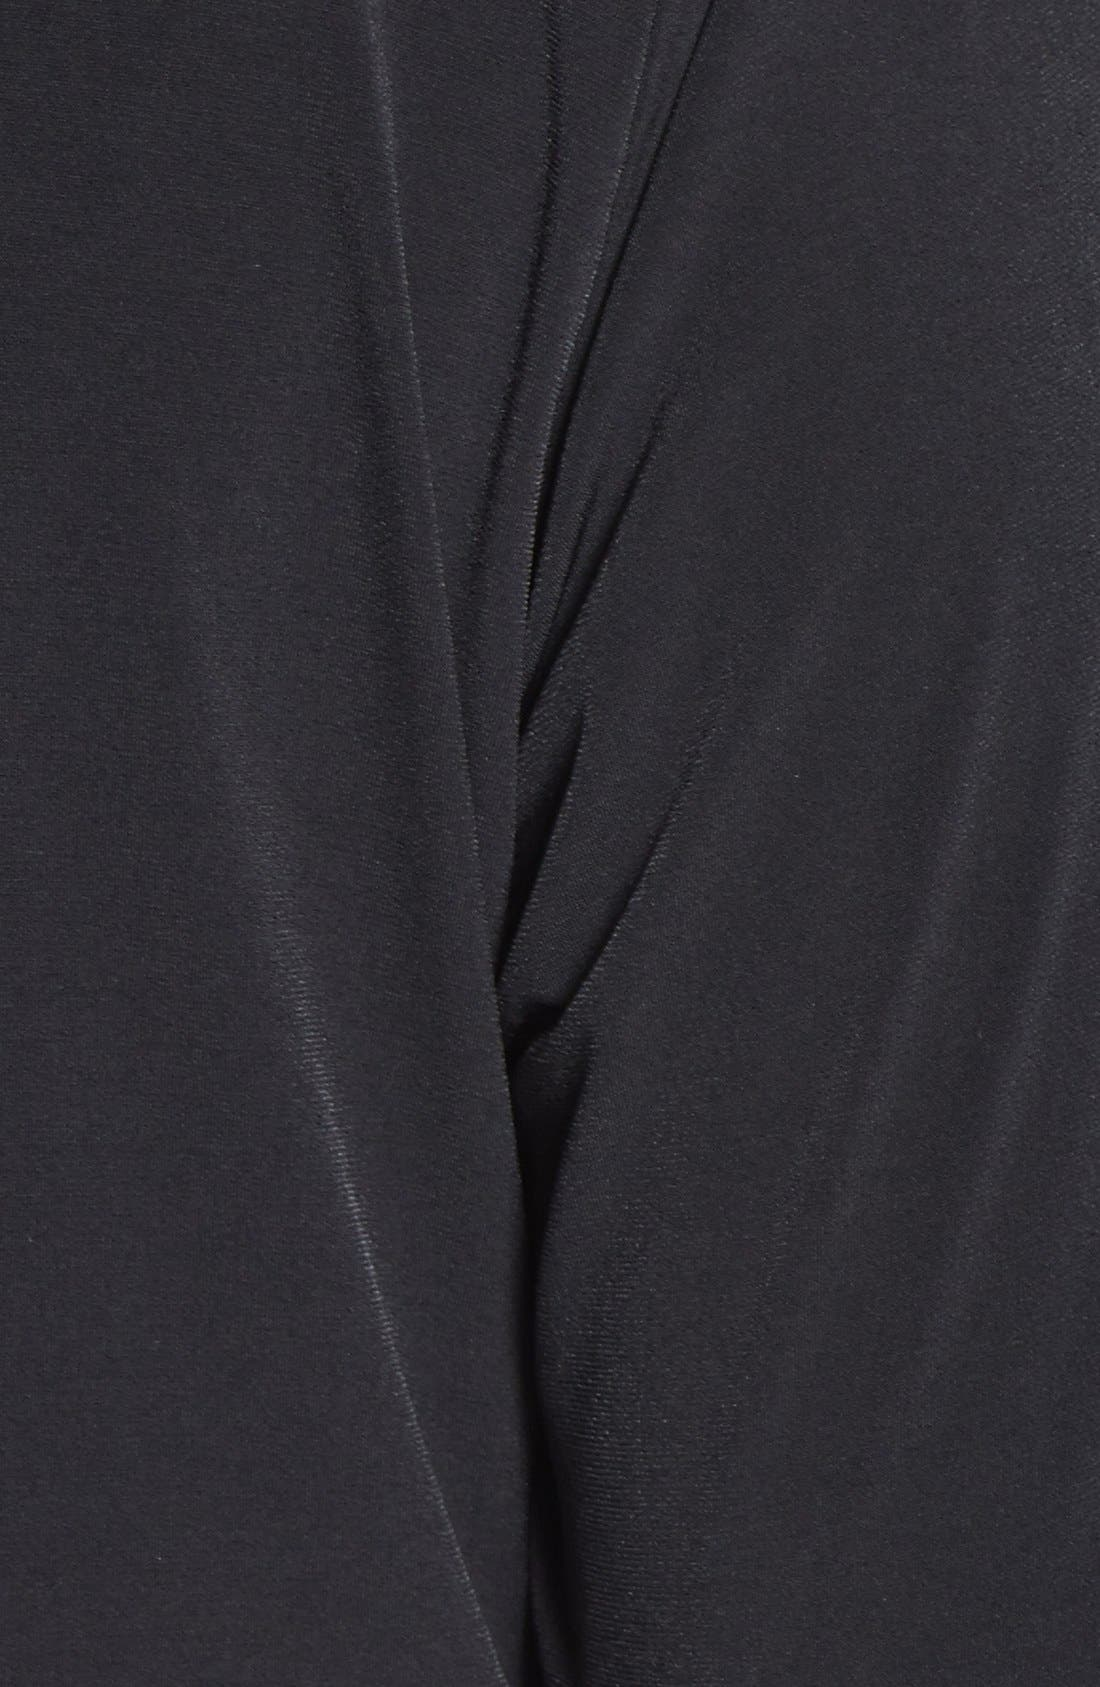 Alternate Image 3  - Tahari by ASL Chain Necklace Detail Jersey Dress (Plus)